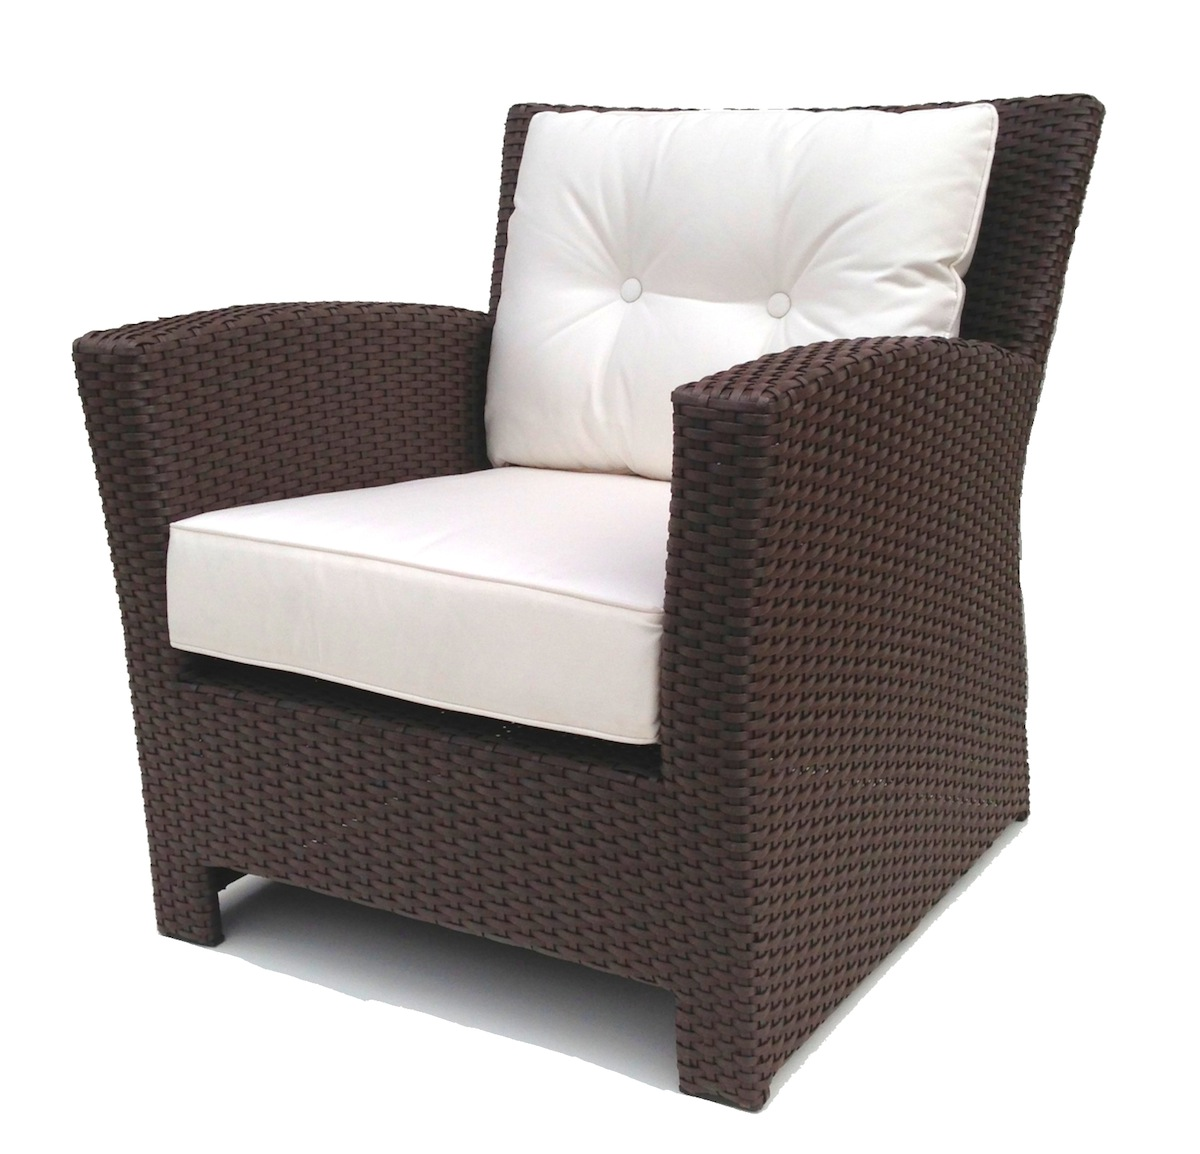 Outdoor wicker club chair for What is wicker furniture